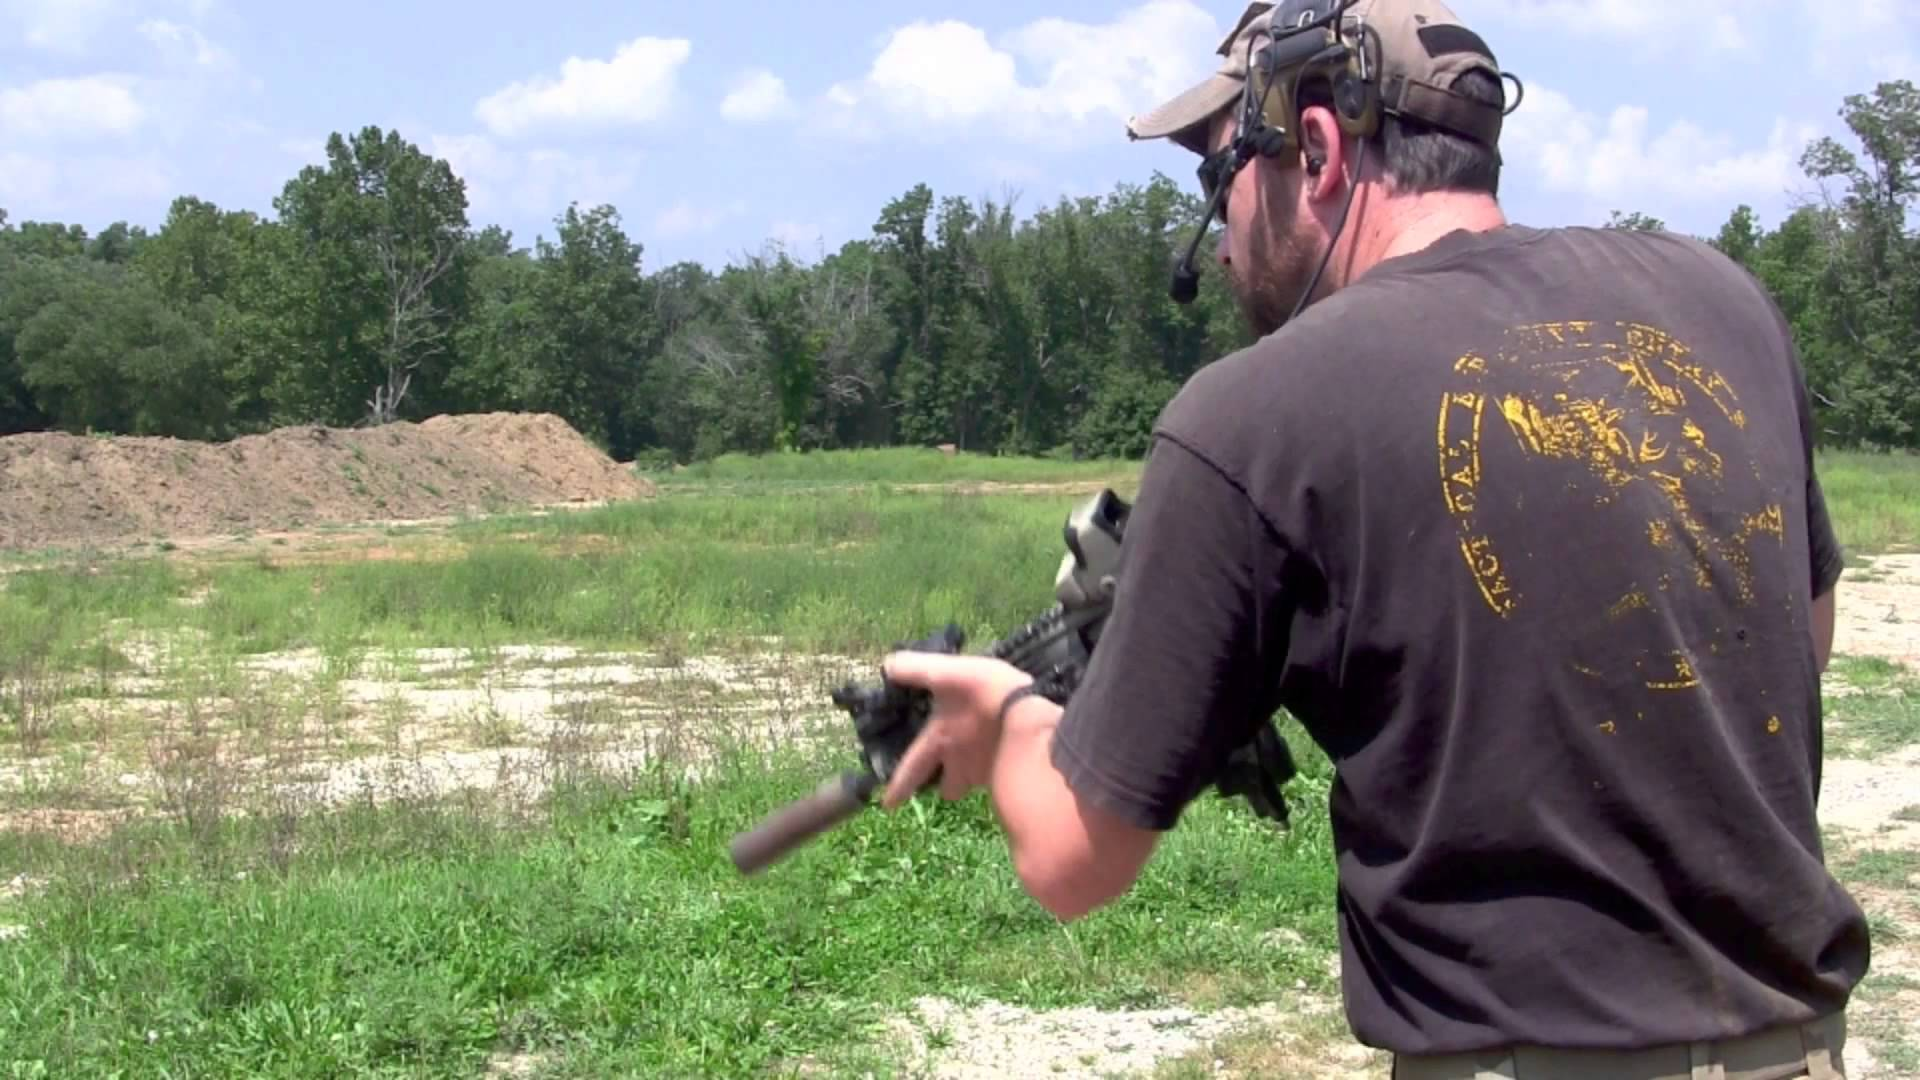 Shooting a Full Auto M4 Carbine with a Suppressor